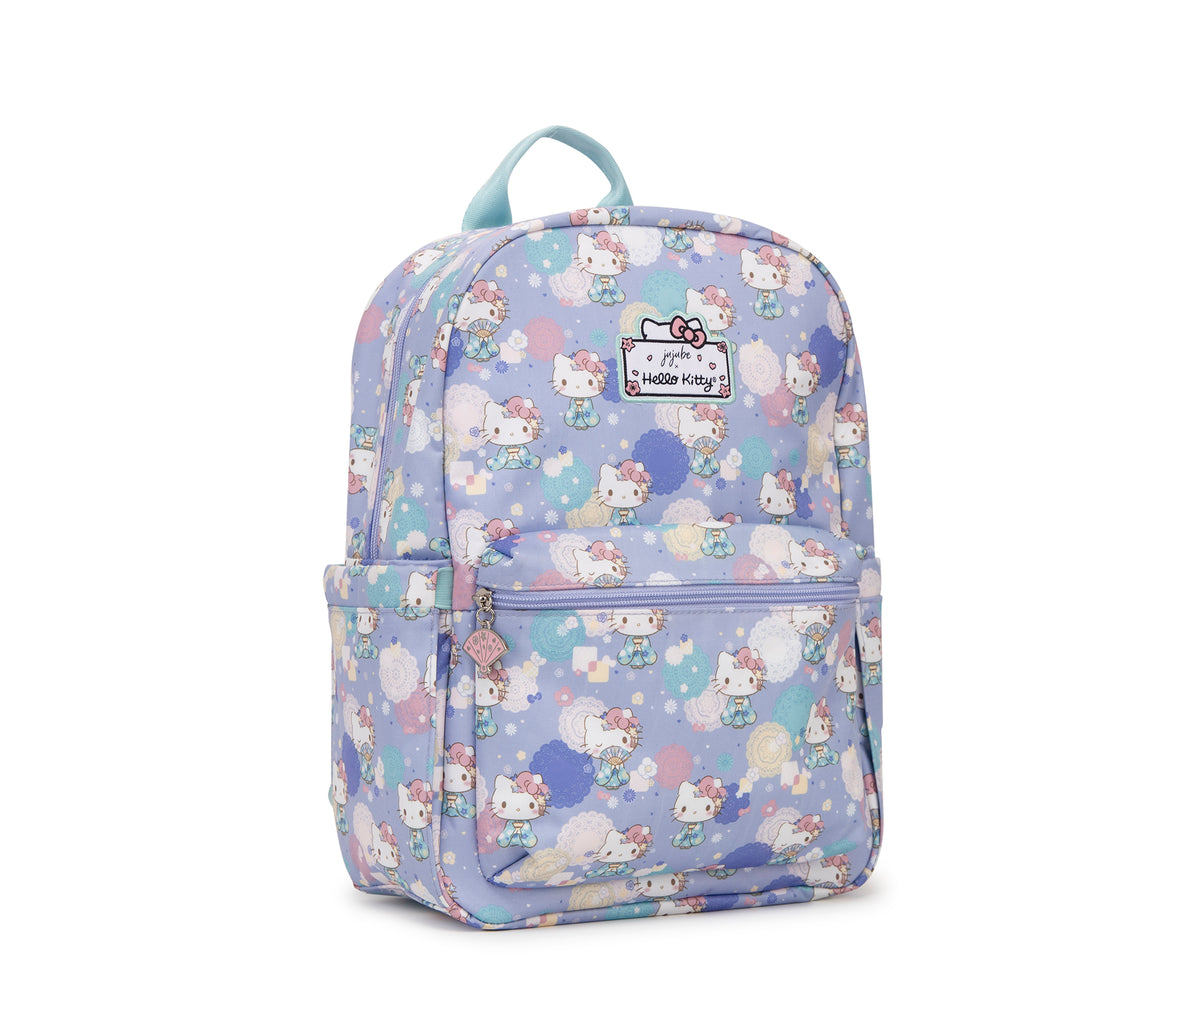 JuJuBe x Hello Kitty Kimono Midi Backpack